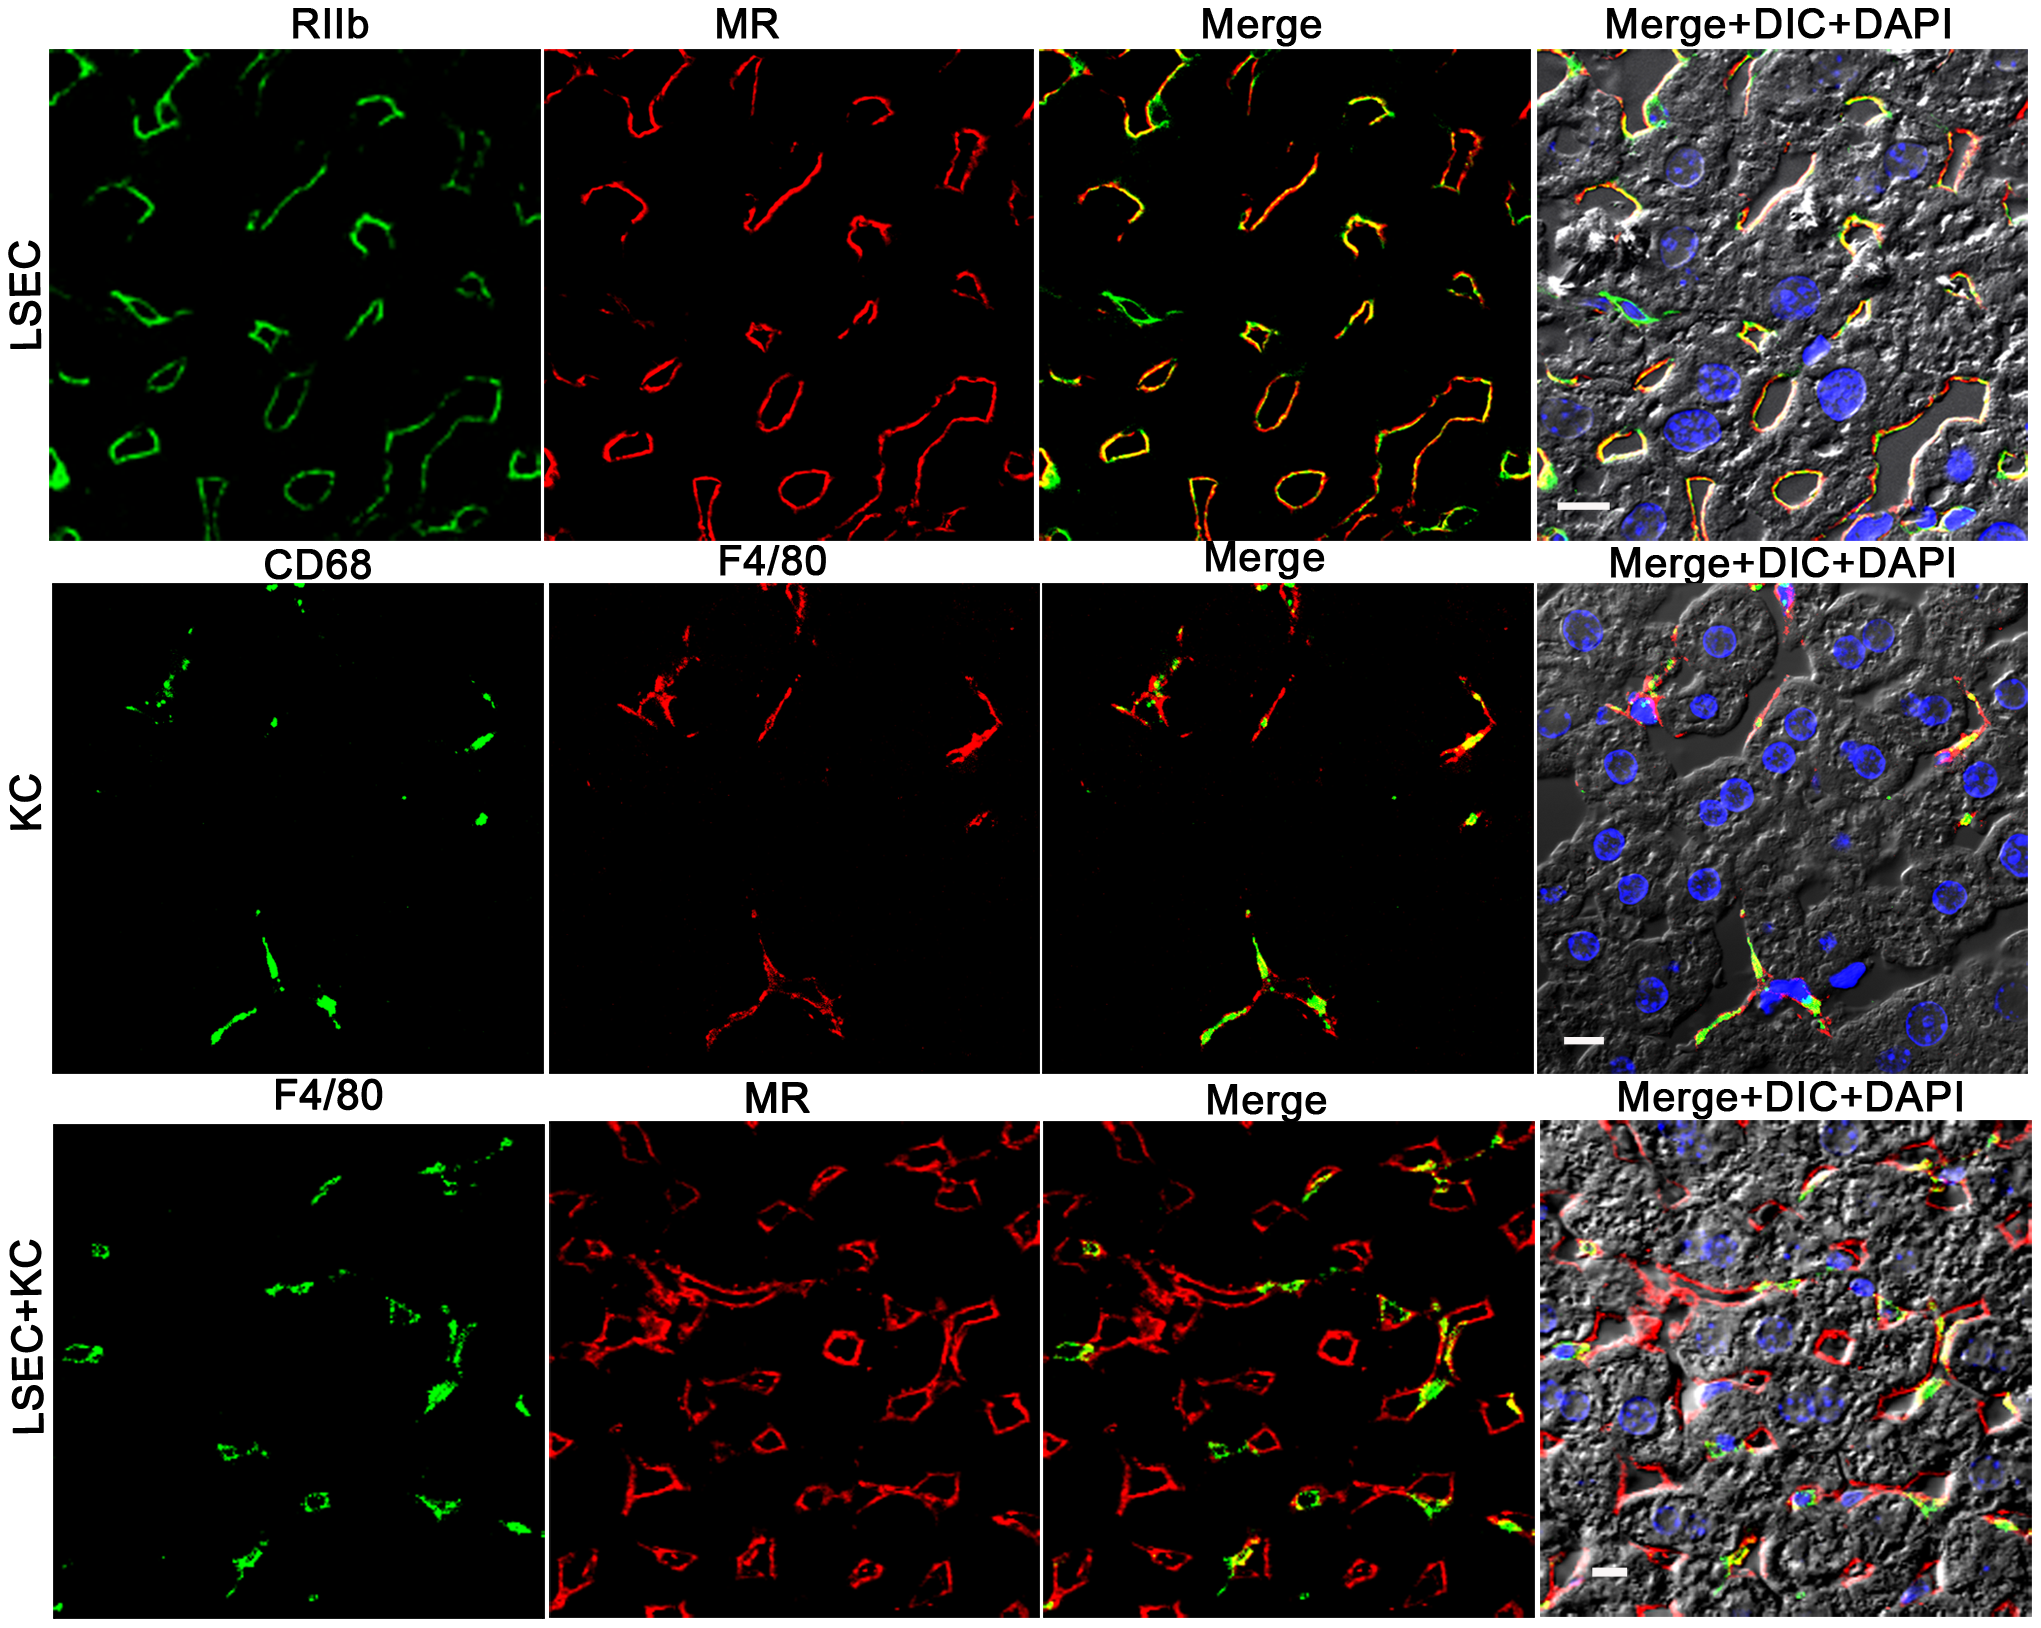 Three-color immunofluorescence images showing LSEC and KC markers in mouse liver.